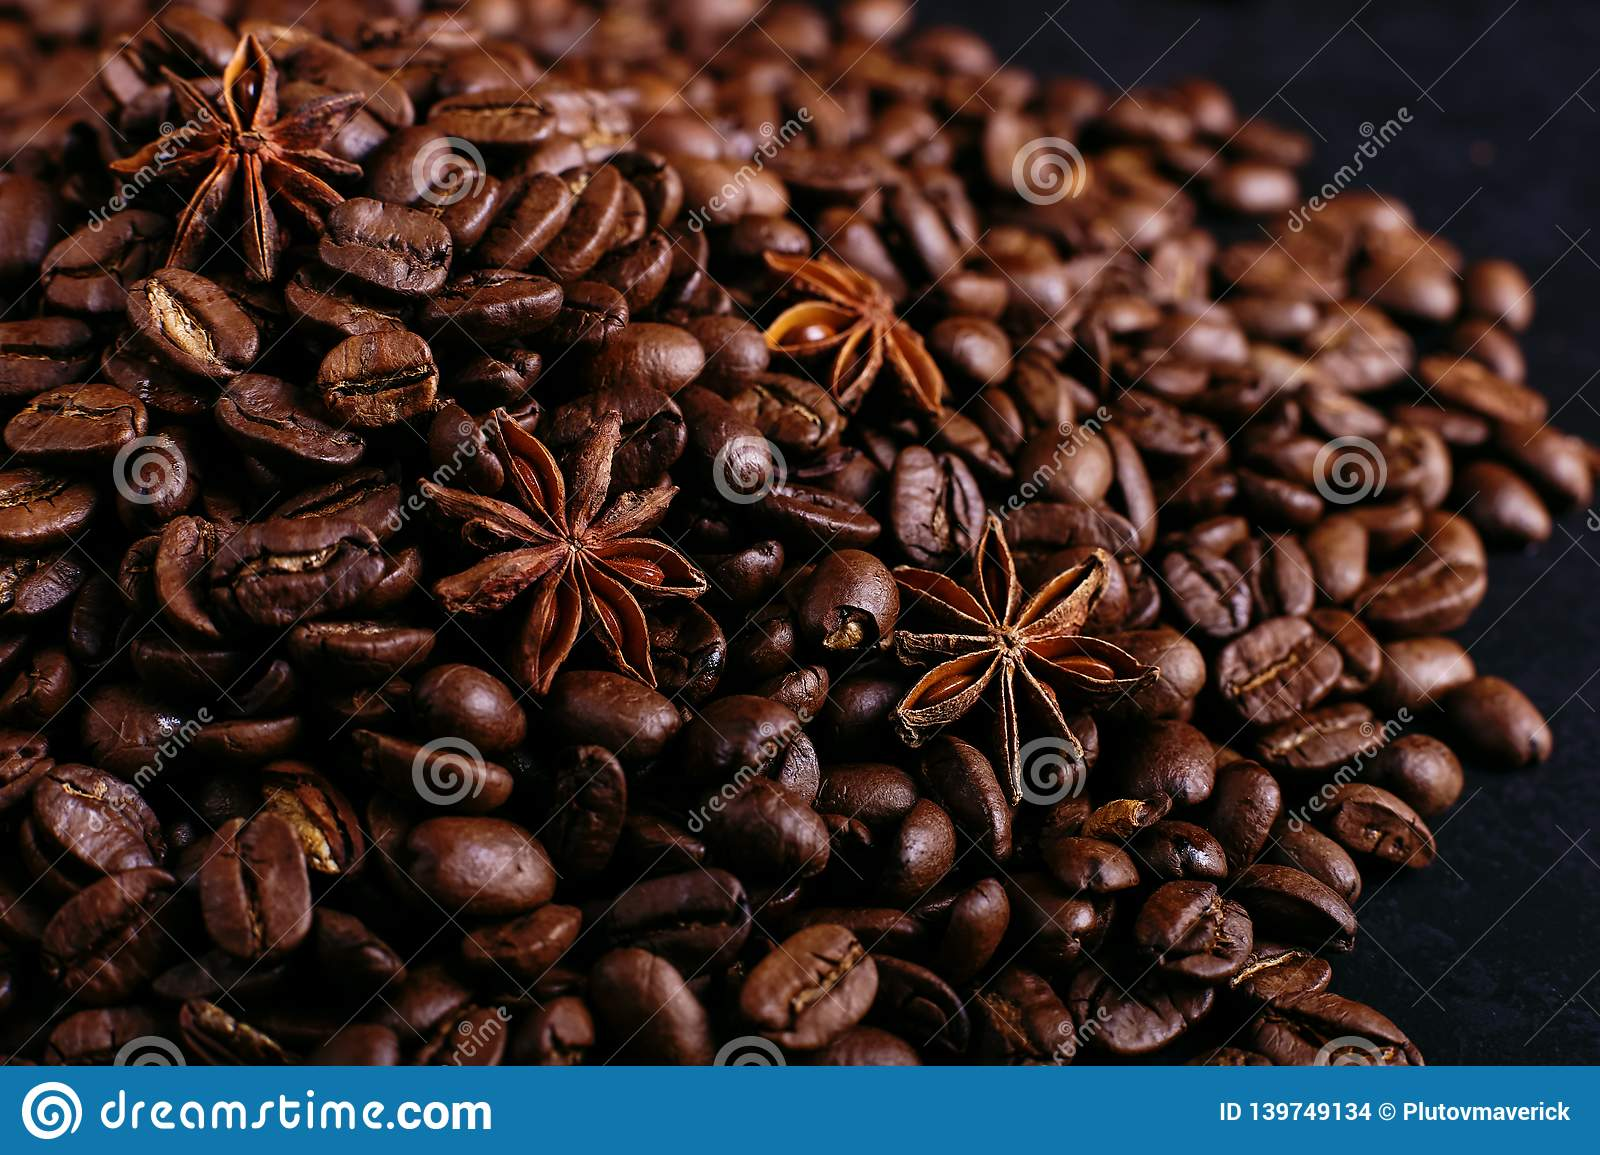 Star anise and coffee beans on the kitchen table. Fragrant spices for coffee drink, closeup background